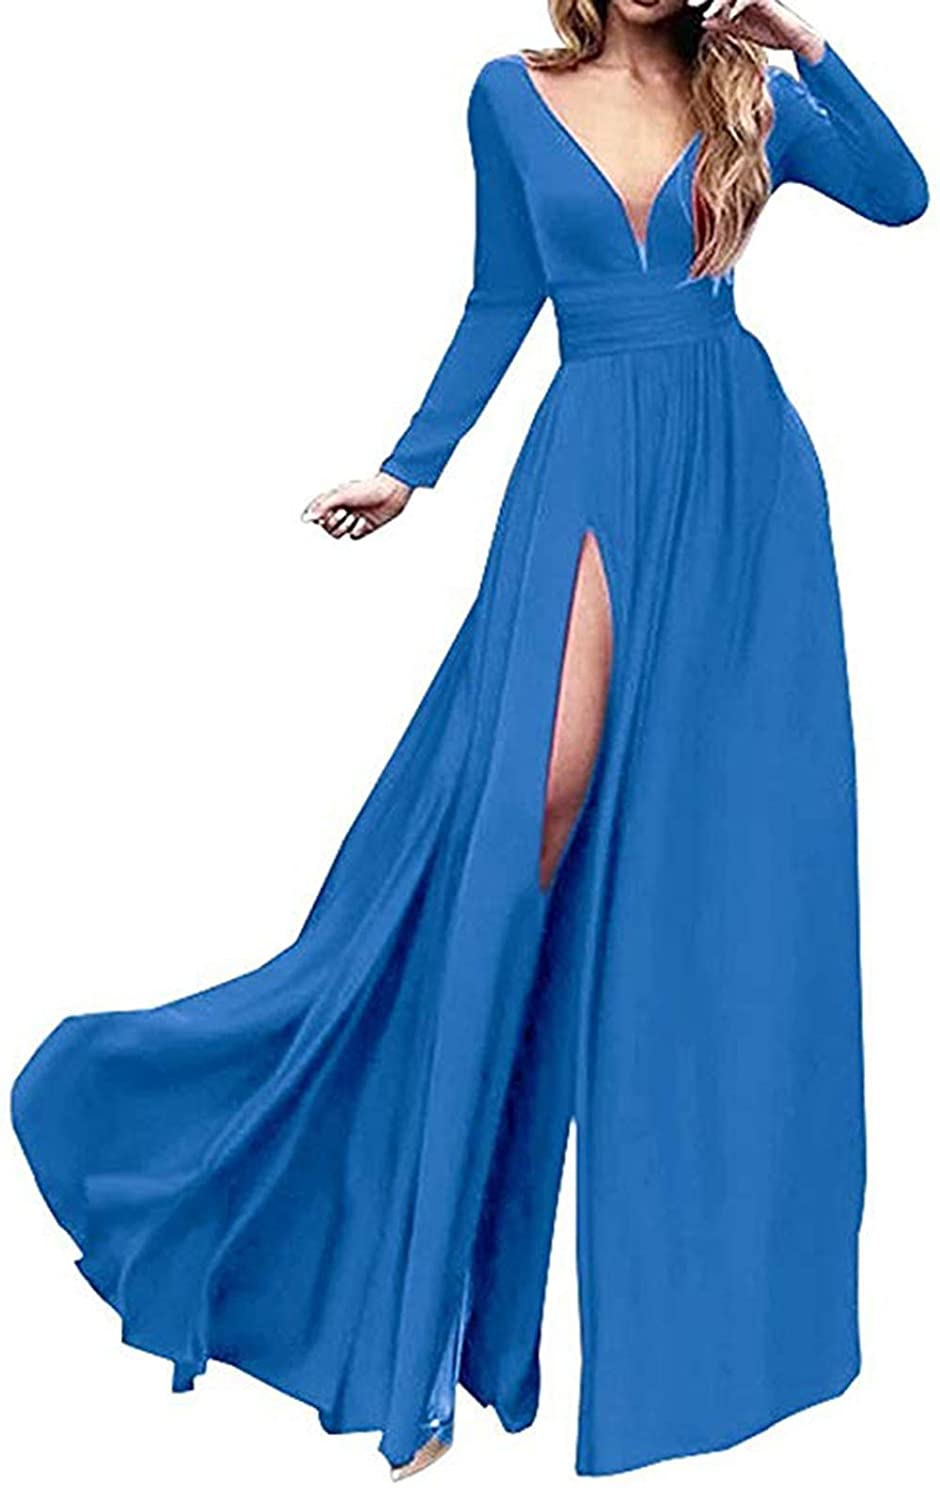 bluee Ri Yun Women's Double VNeck Long Sleeve Prom Dresses Long 2019 Side Slit Formal Evening Ball Gowns